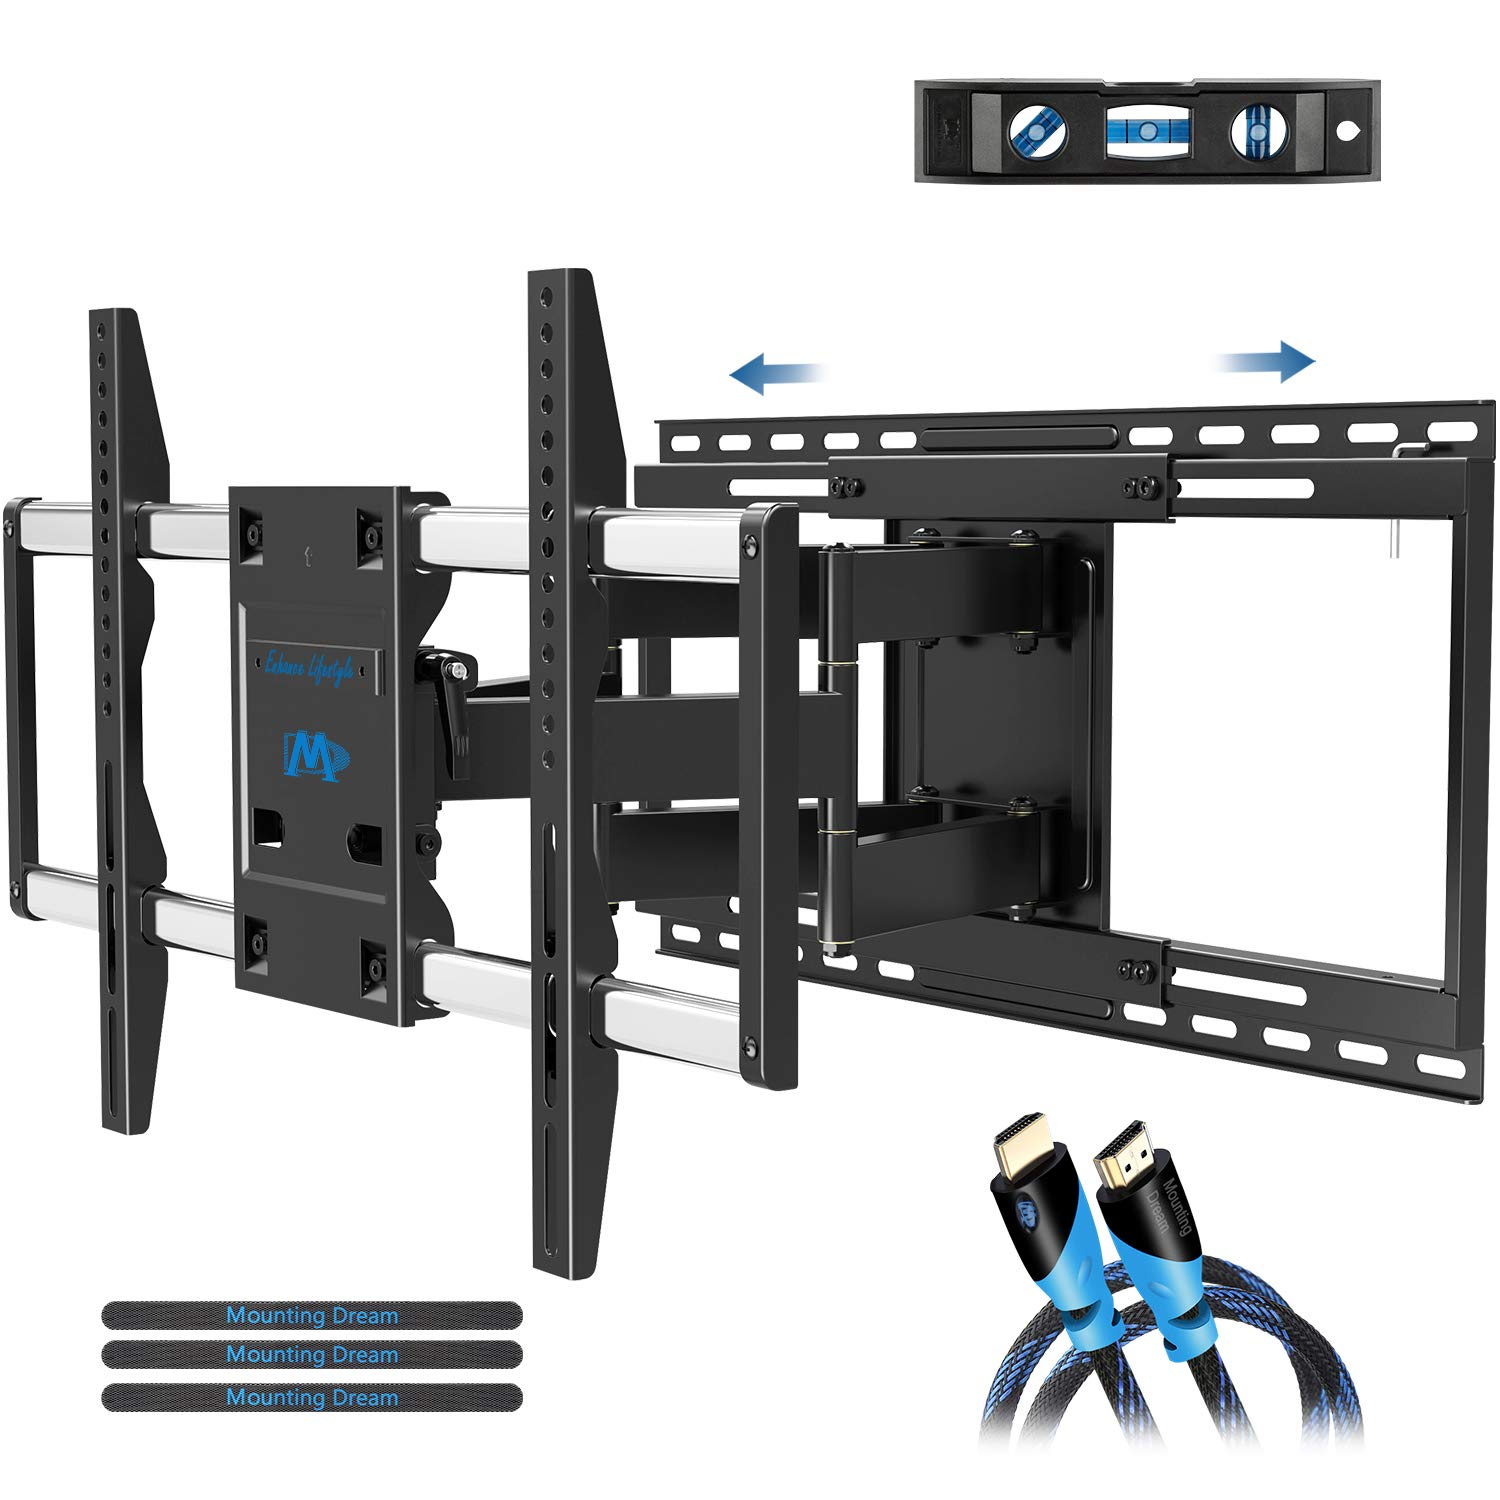 Mounting Dream TV Mount Full Motion with Sliding Design for TV Centering, Articulating TV Wall Mounts TV Bracket for 42-70 Inch TVs - Easy to Install on 16'', 18'' or 24'' Studs - 19'' Extension, MD2198 by Mounting Dream